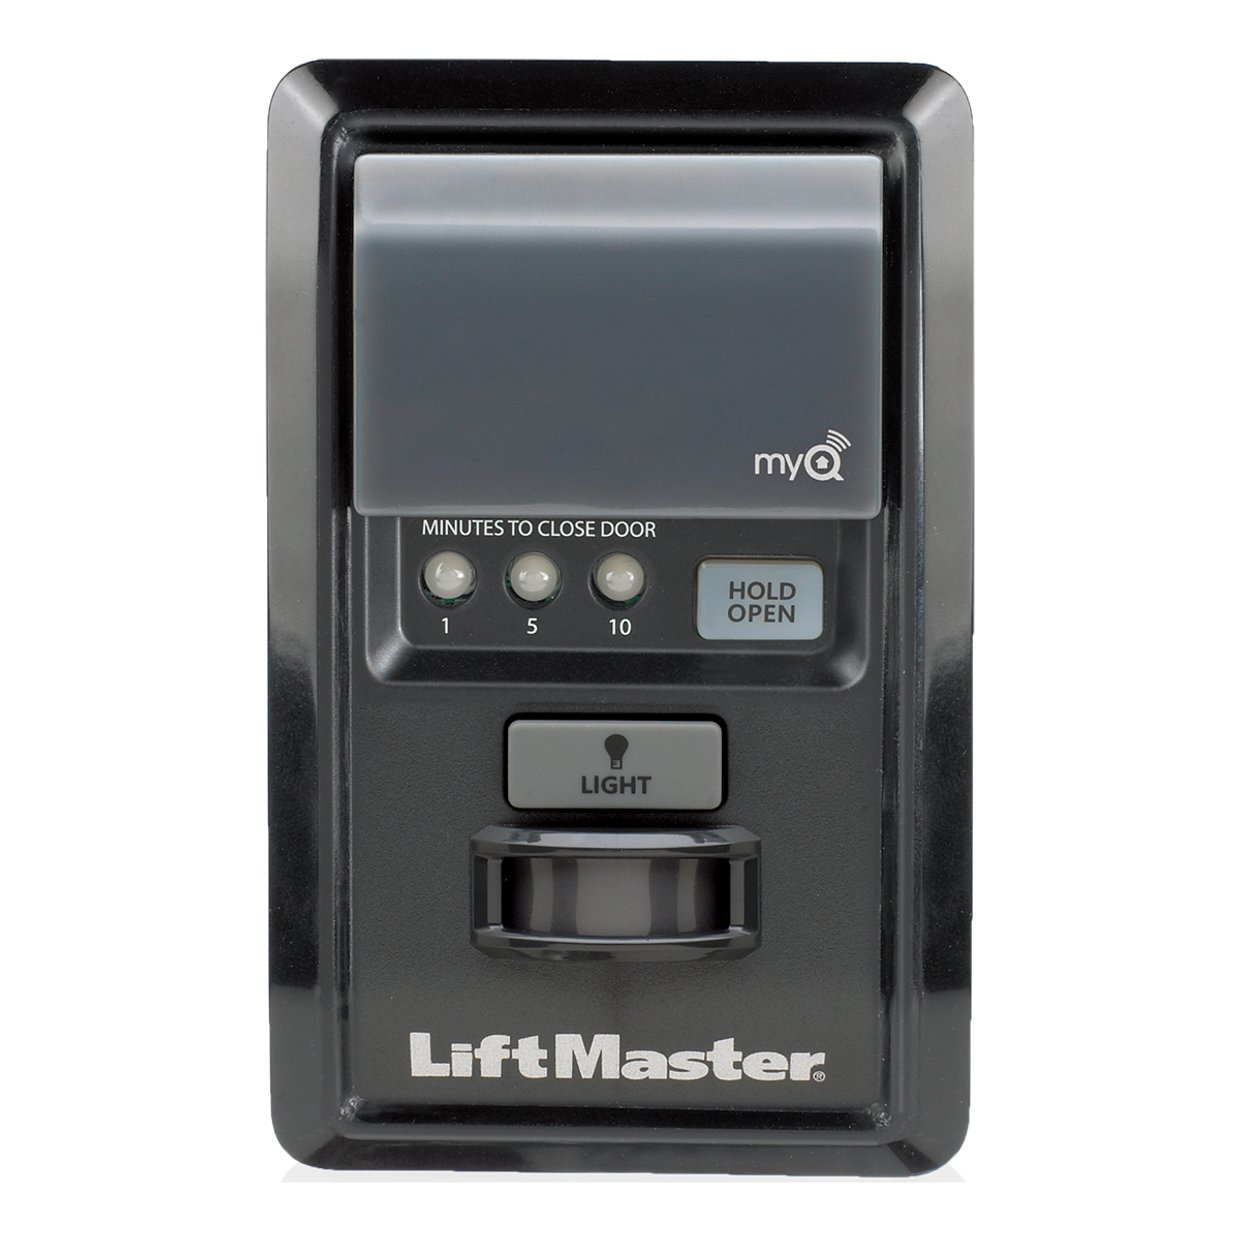 888lm Garage Door Wall Control Liftmaster